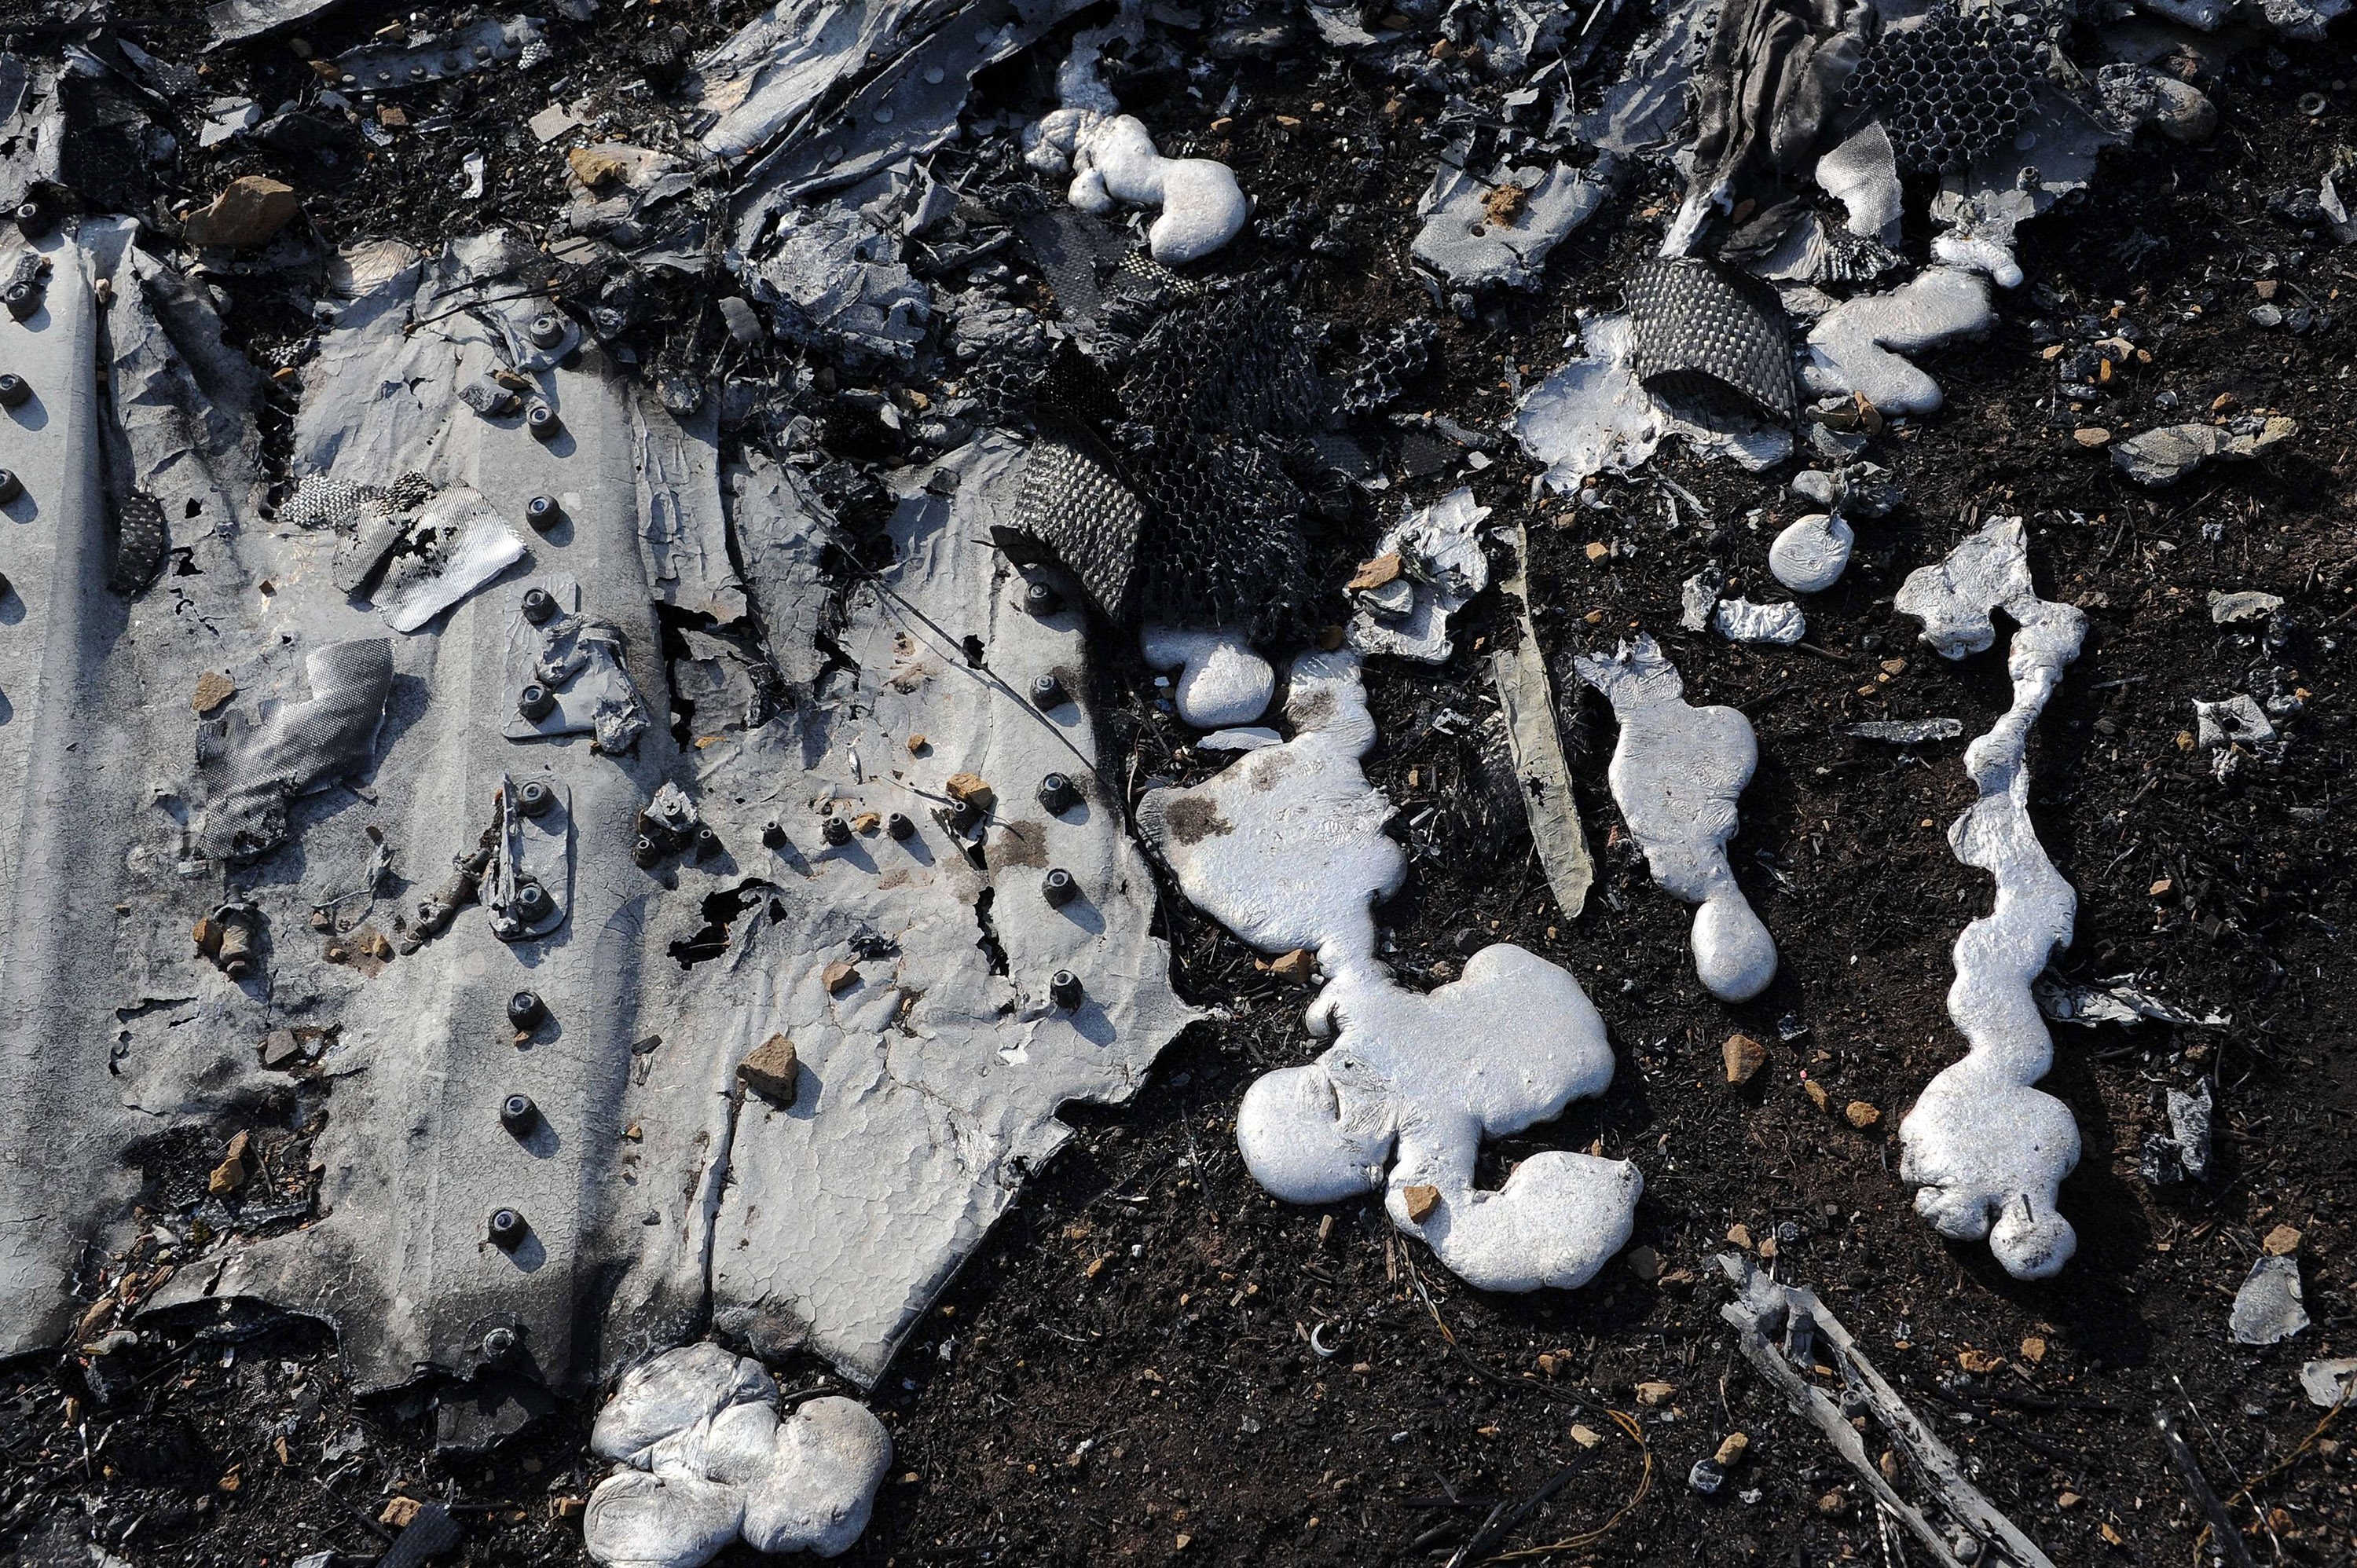 Solidified molten steel is pictured among the wreckage of Malaysia Airlines flight MH17 near the village of Rassipnoe, Ukraine on on Oct. 15, 2014